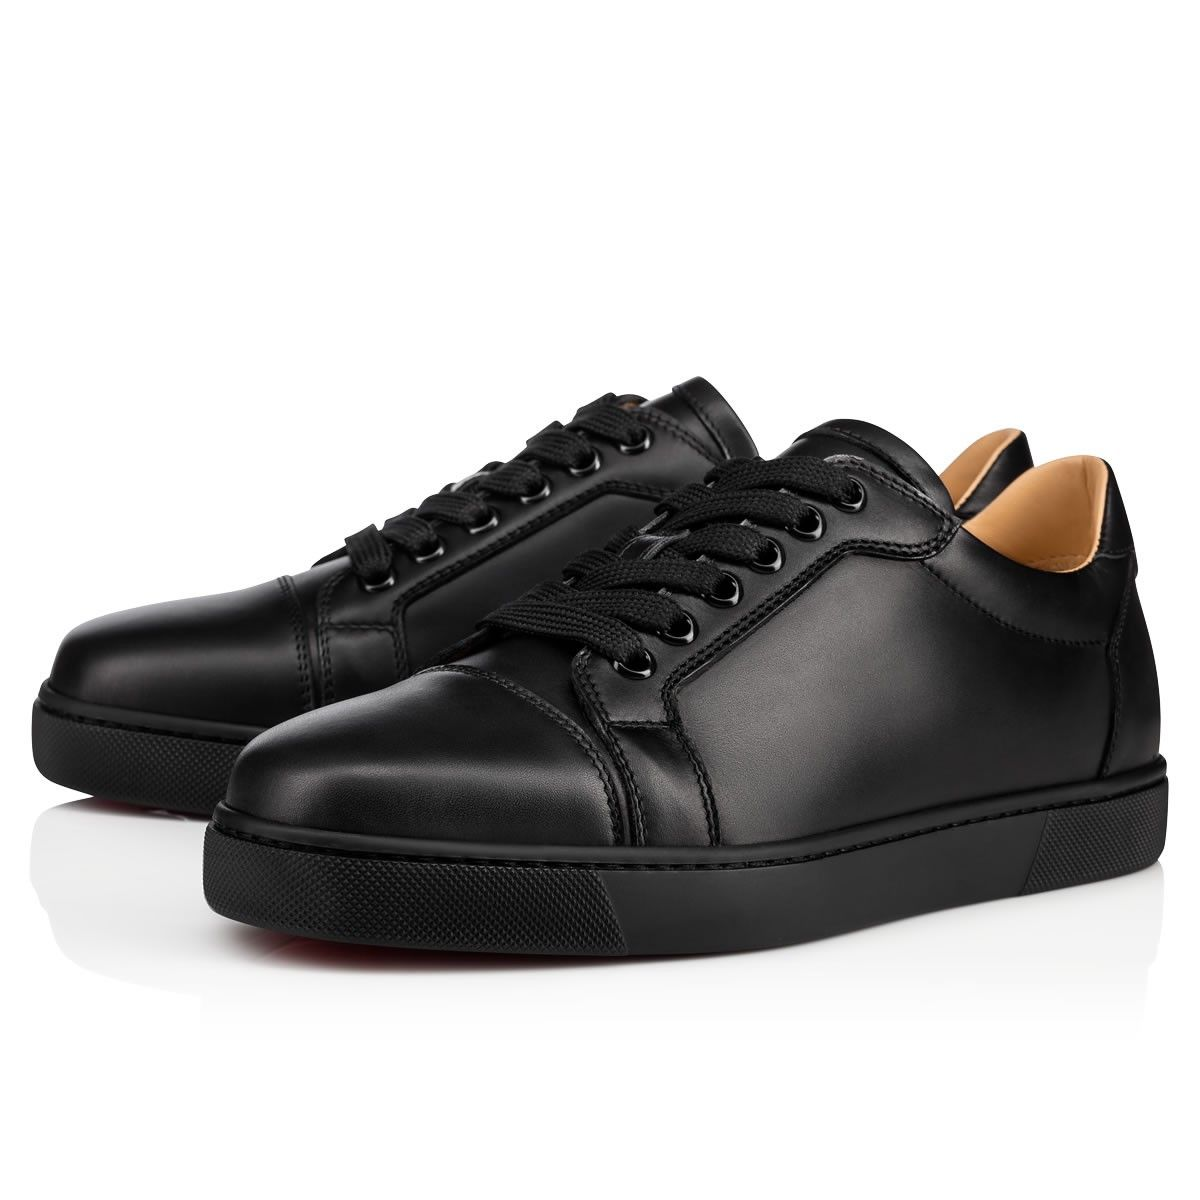 5a62ea33c2fd5 Christian Louboutin United States Official Online Boutique - Vieira Flat  Black/Bk Leather available online. Discover more Women Shoes by Christian  Louboutin